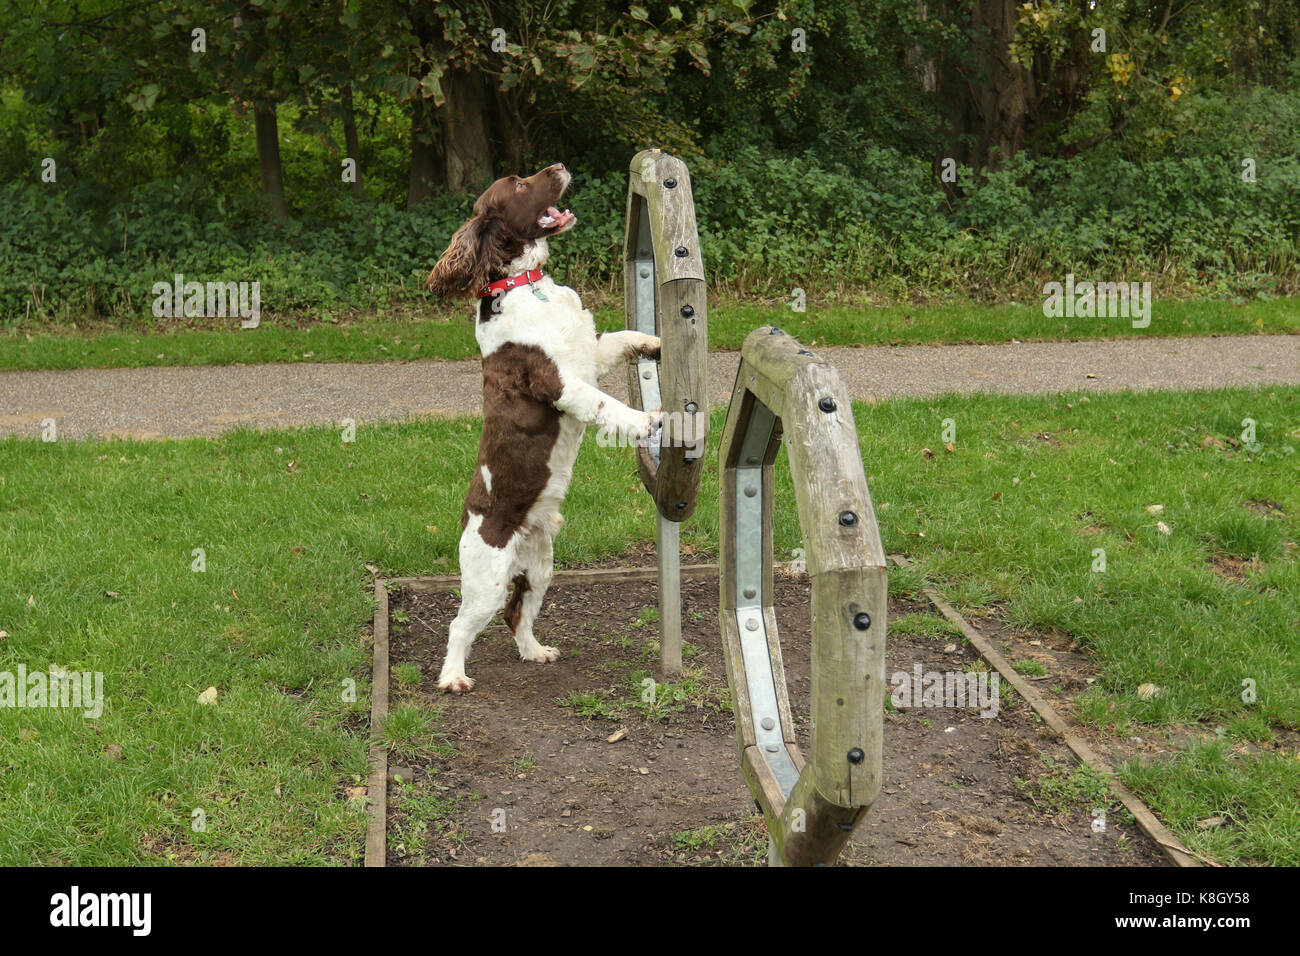 A cute English Springer Spaniel Dog (Canis lupus familiaris) attempting agility. Stock Photo